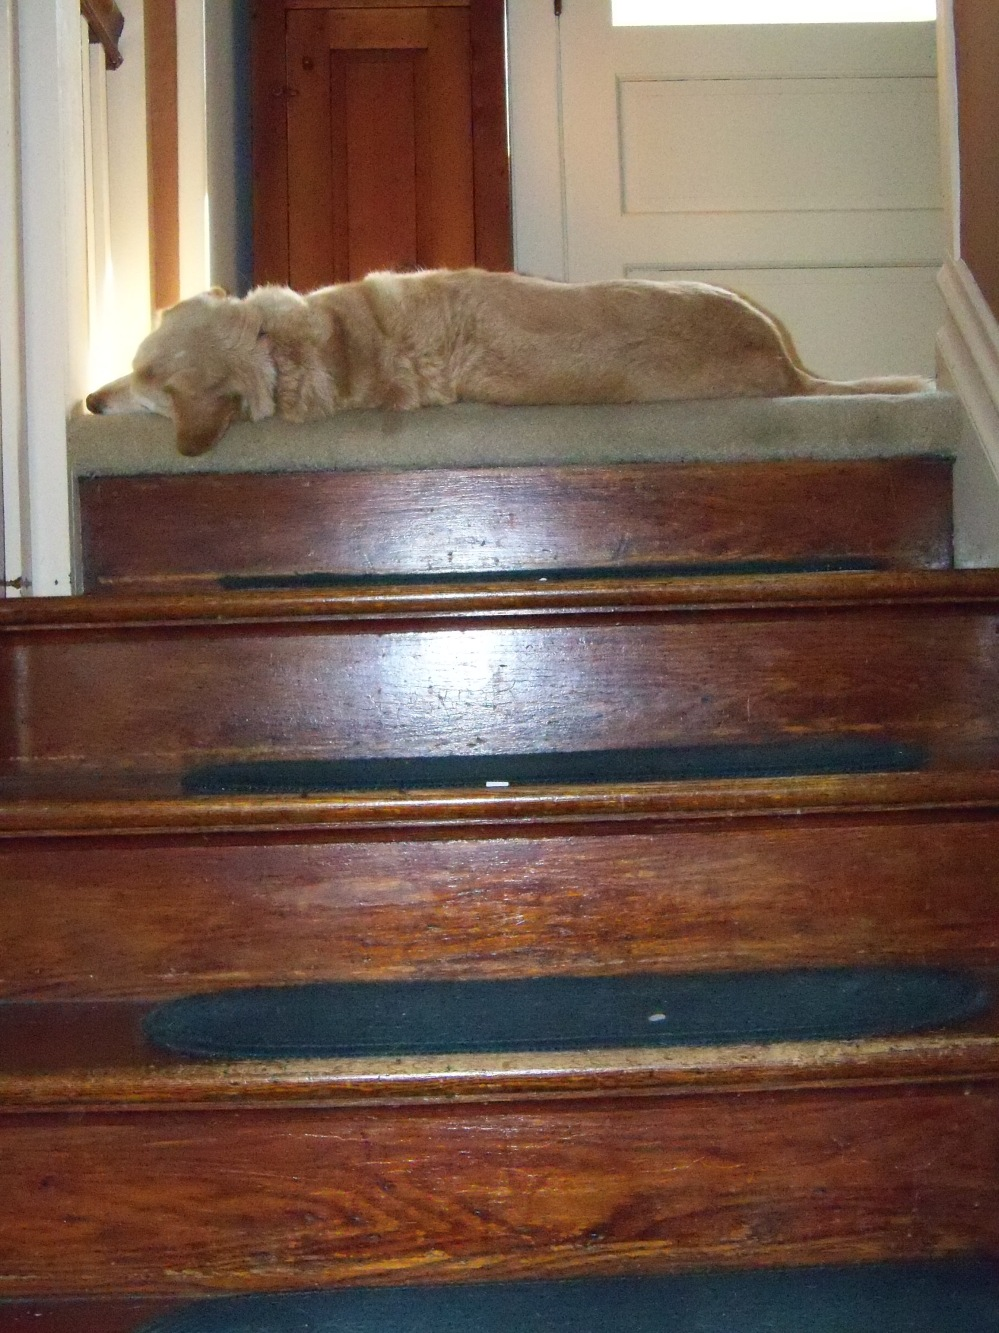 Butterscotch on stairs